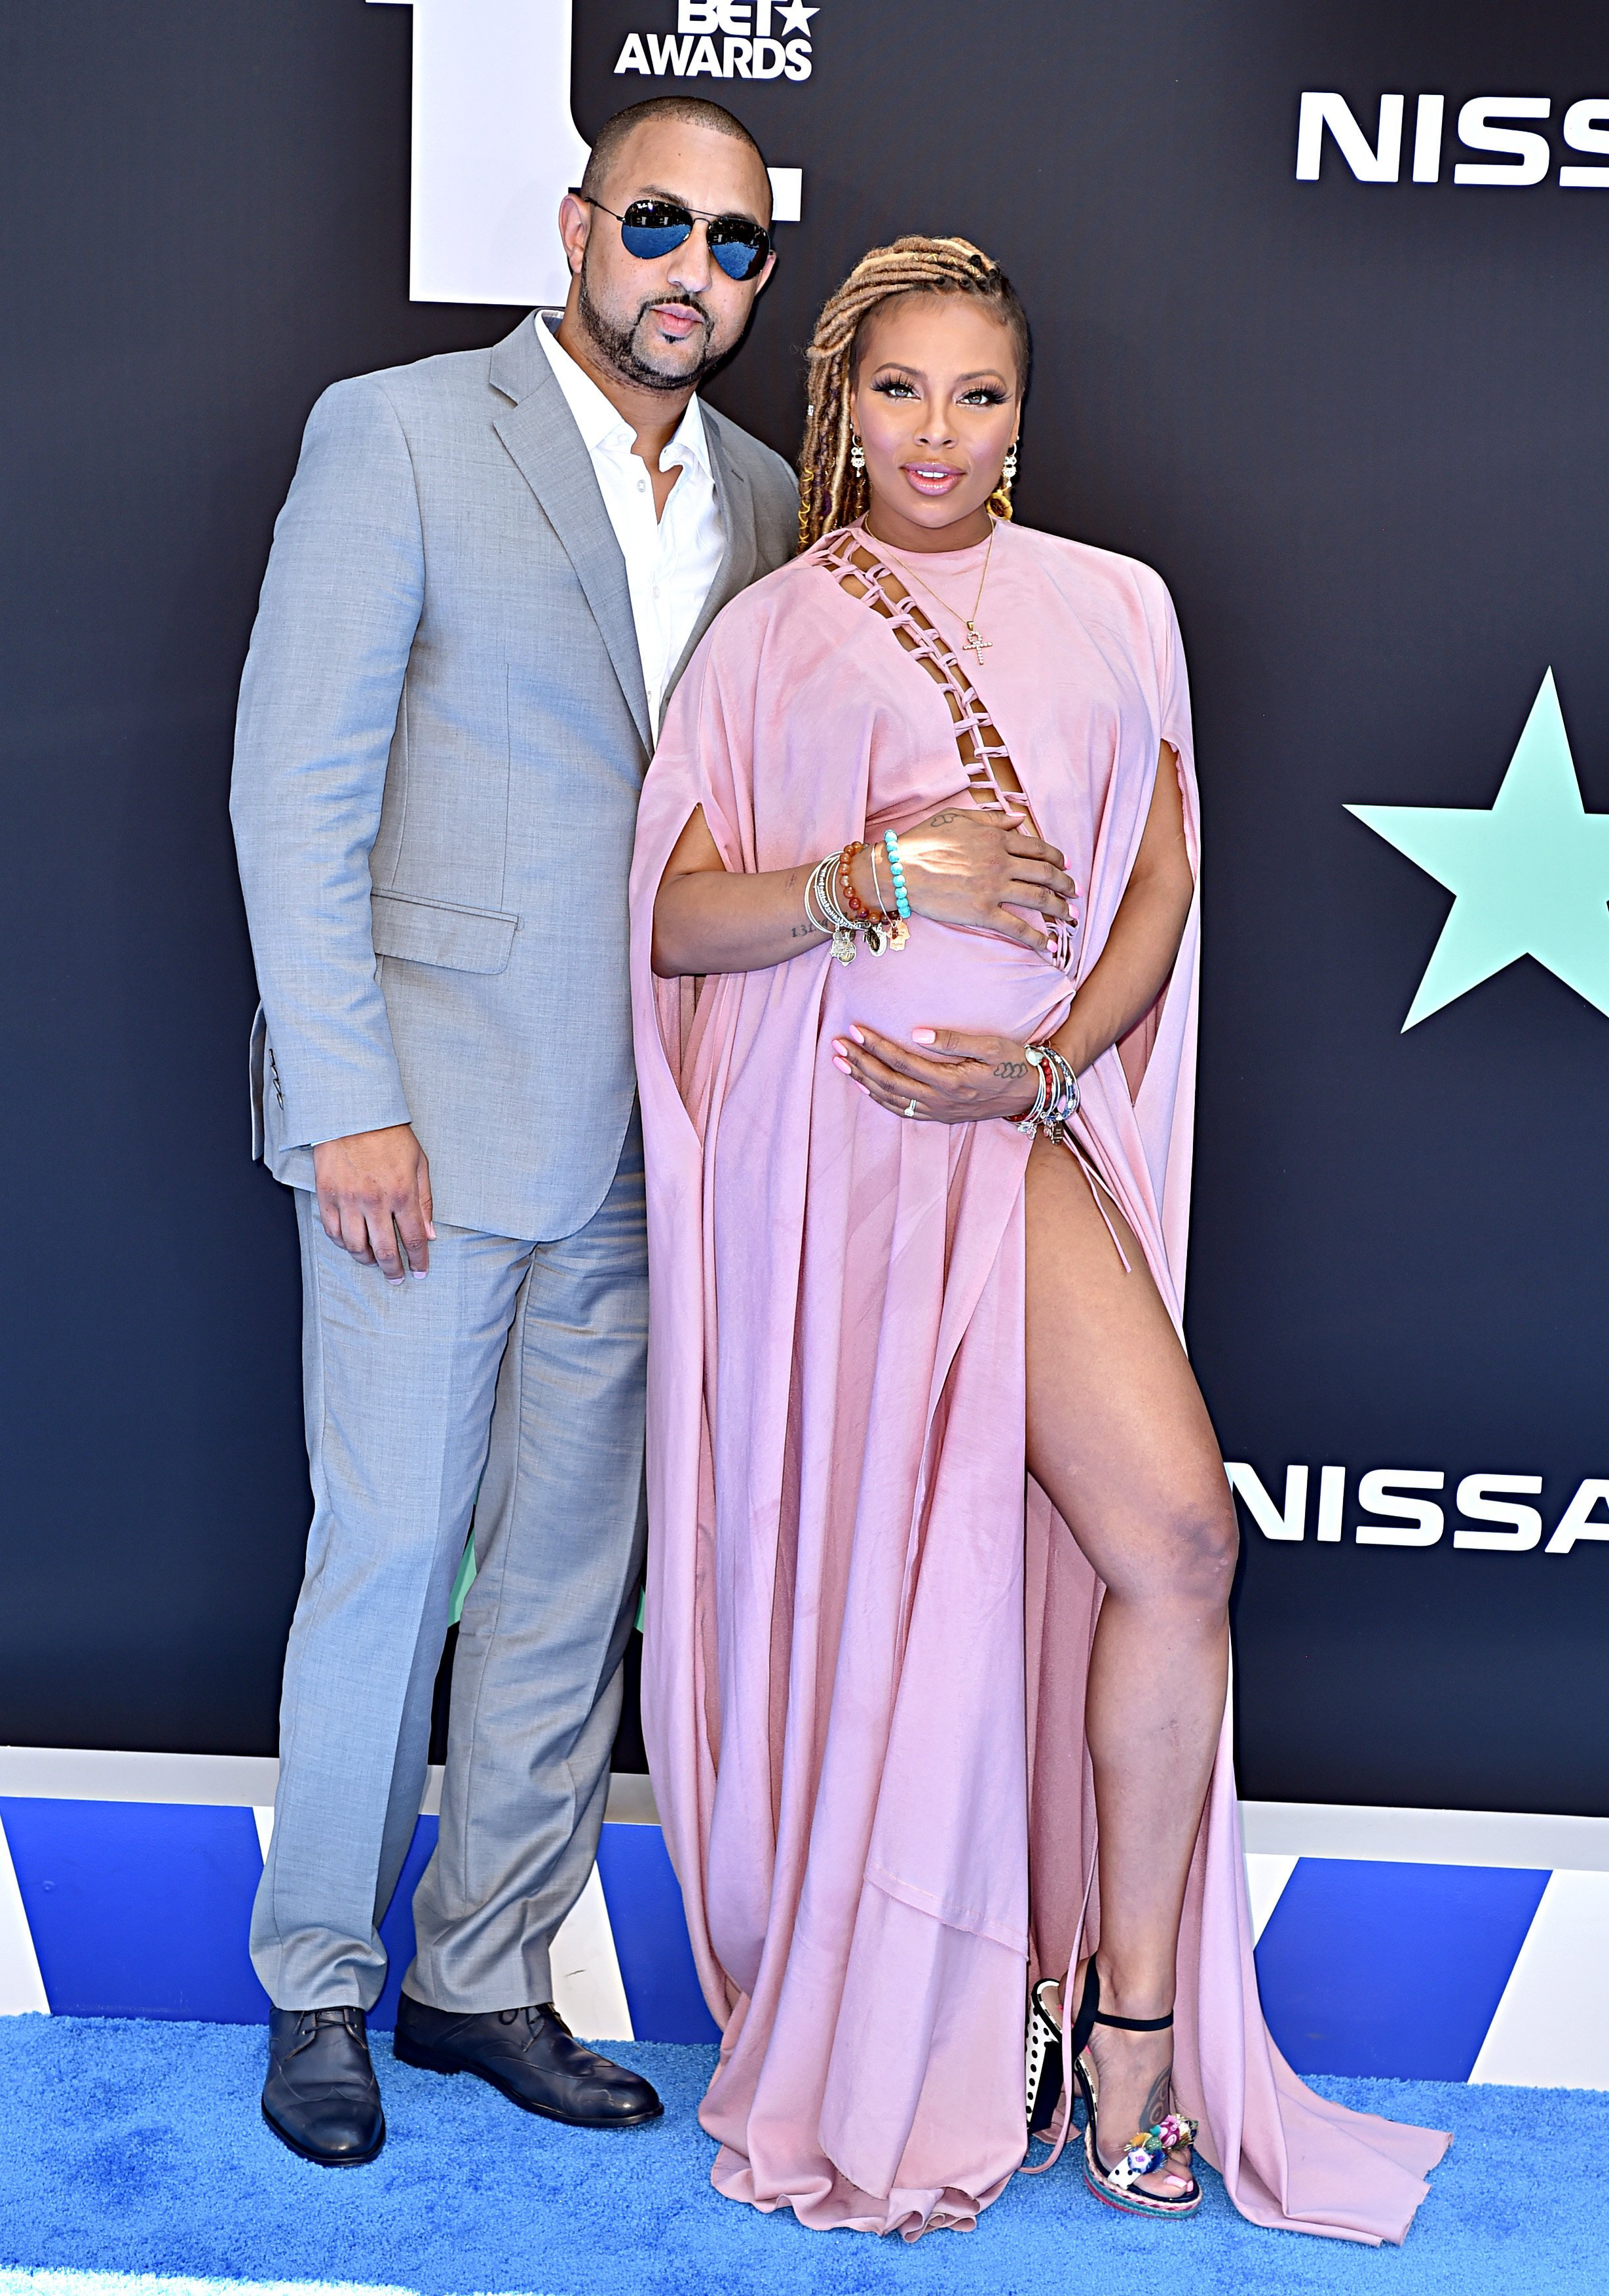 Eva Marcille & husband, Michael Sterling at the BET Awards on June 23, 2019 in California | Photo: Getty Images